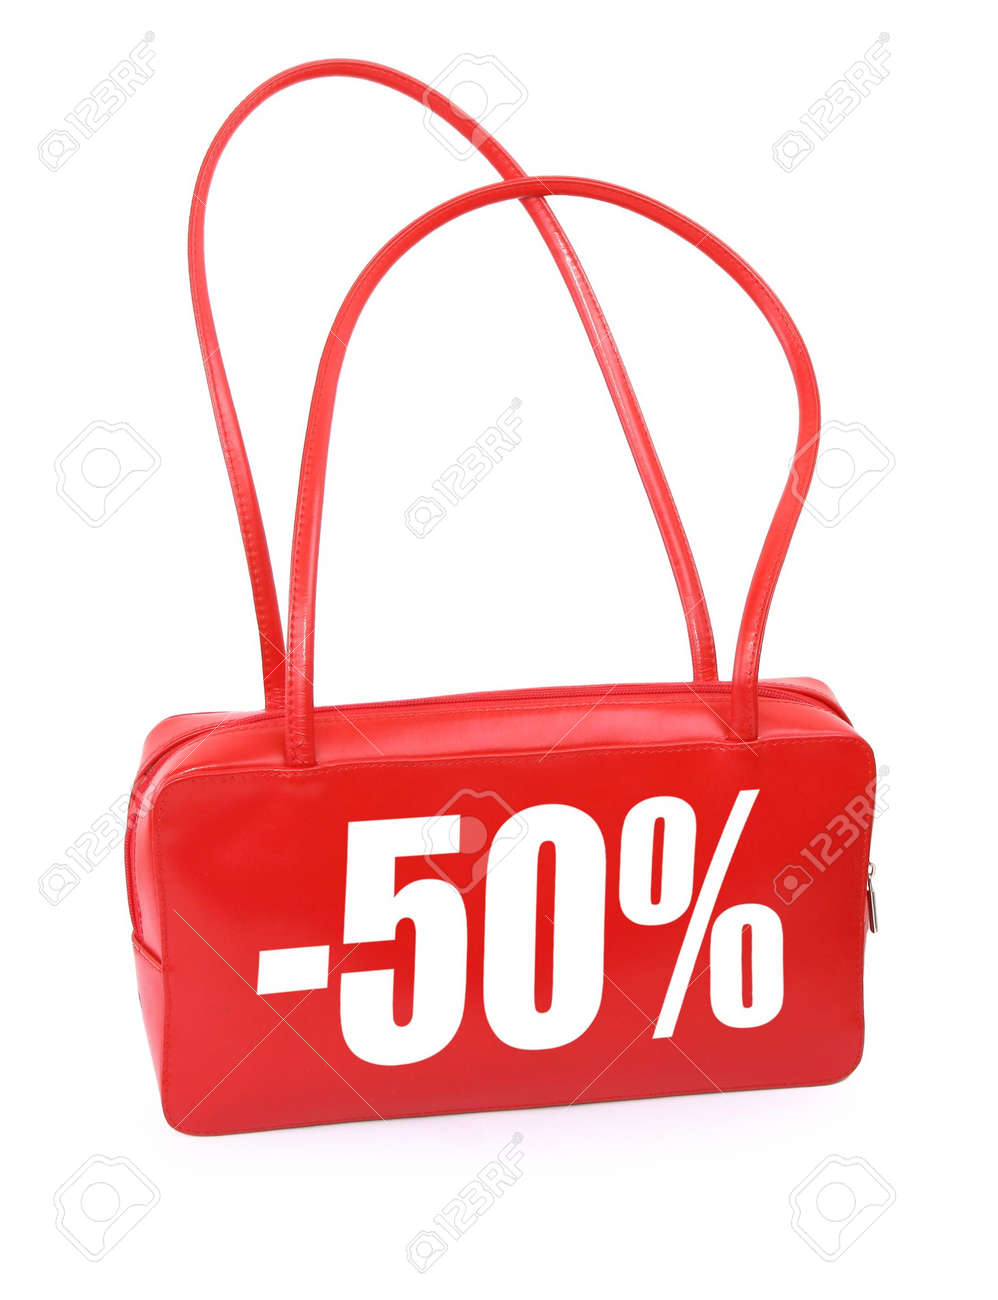 red leather handbag with red sale sign on white background, minimal natural shadow in front, the photo does not infringe any copyright Stock Photo - 2466564